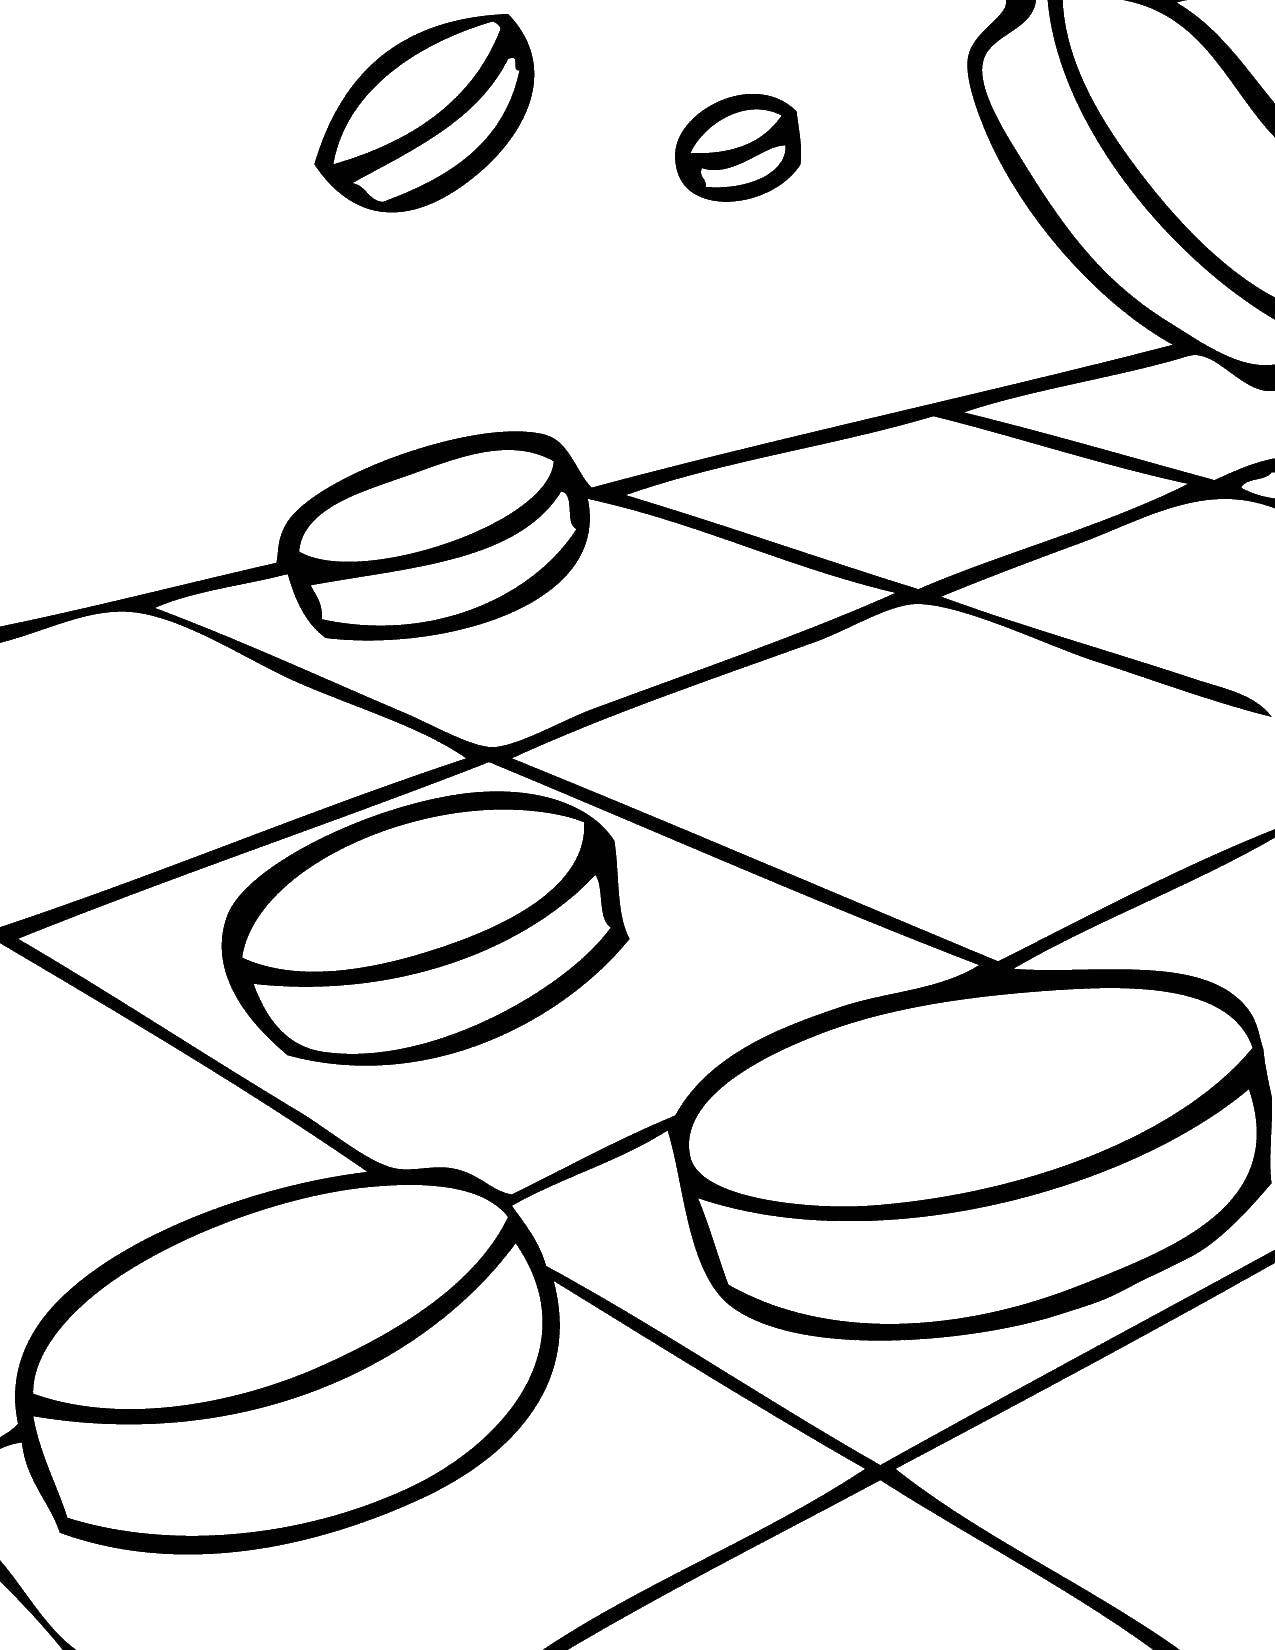 Free Chess Board Colouring Page download | 1650x1275